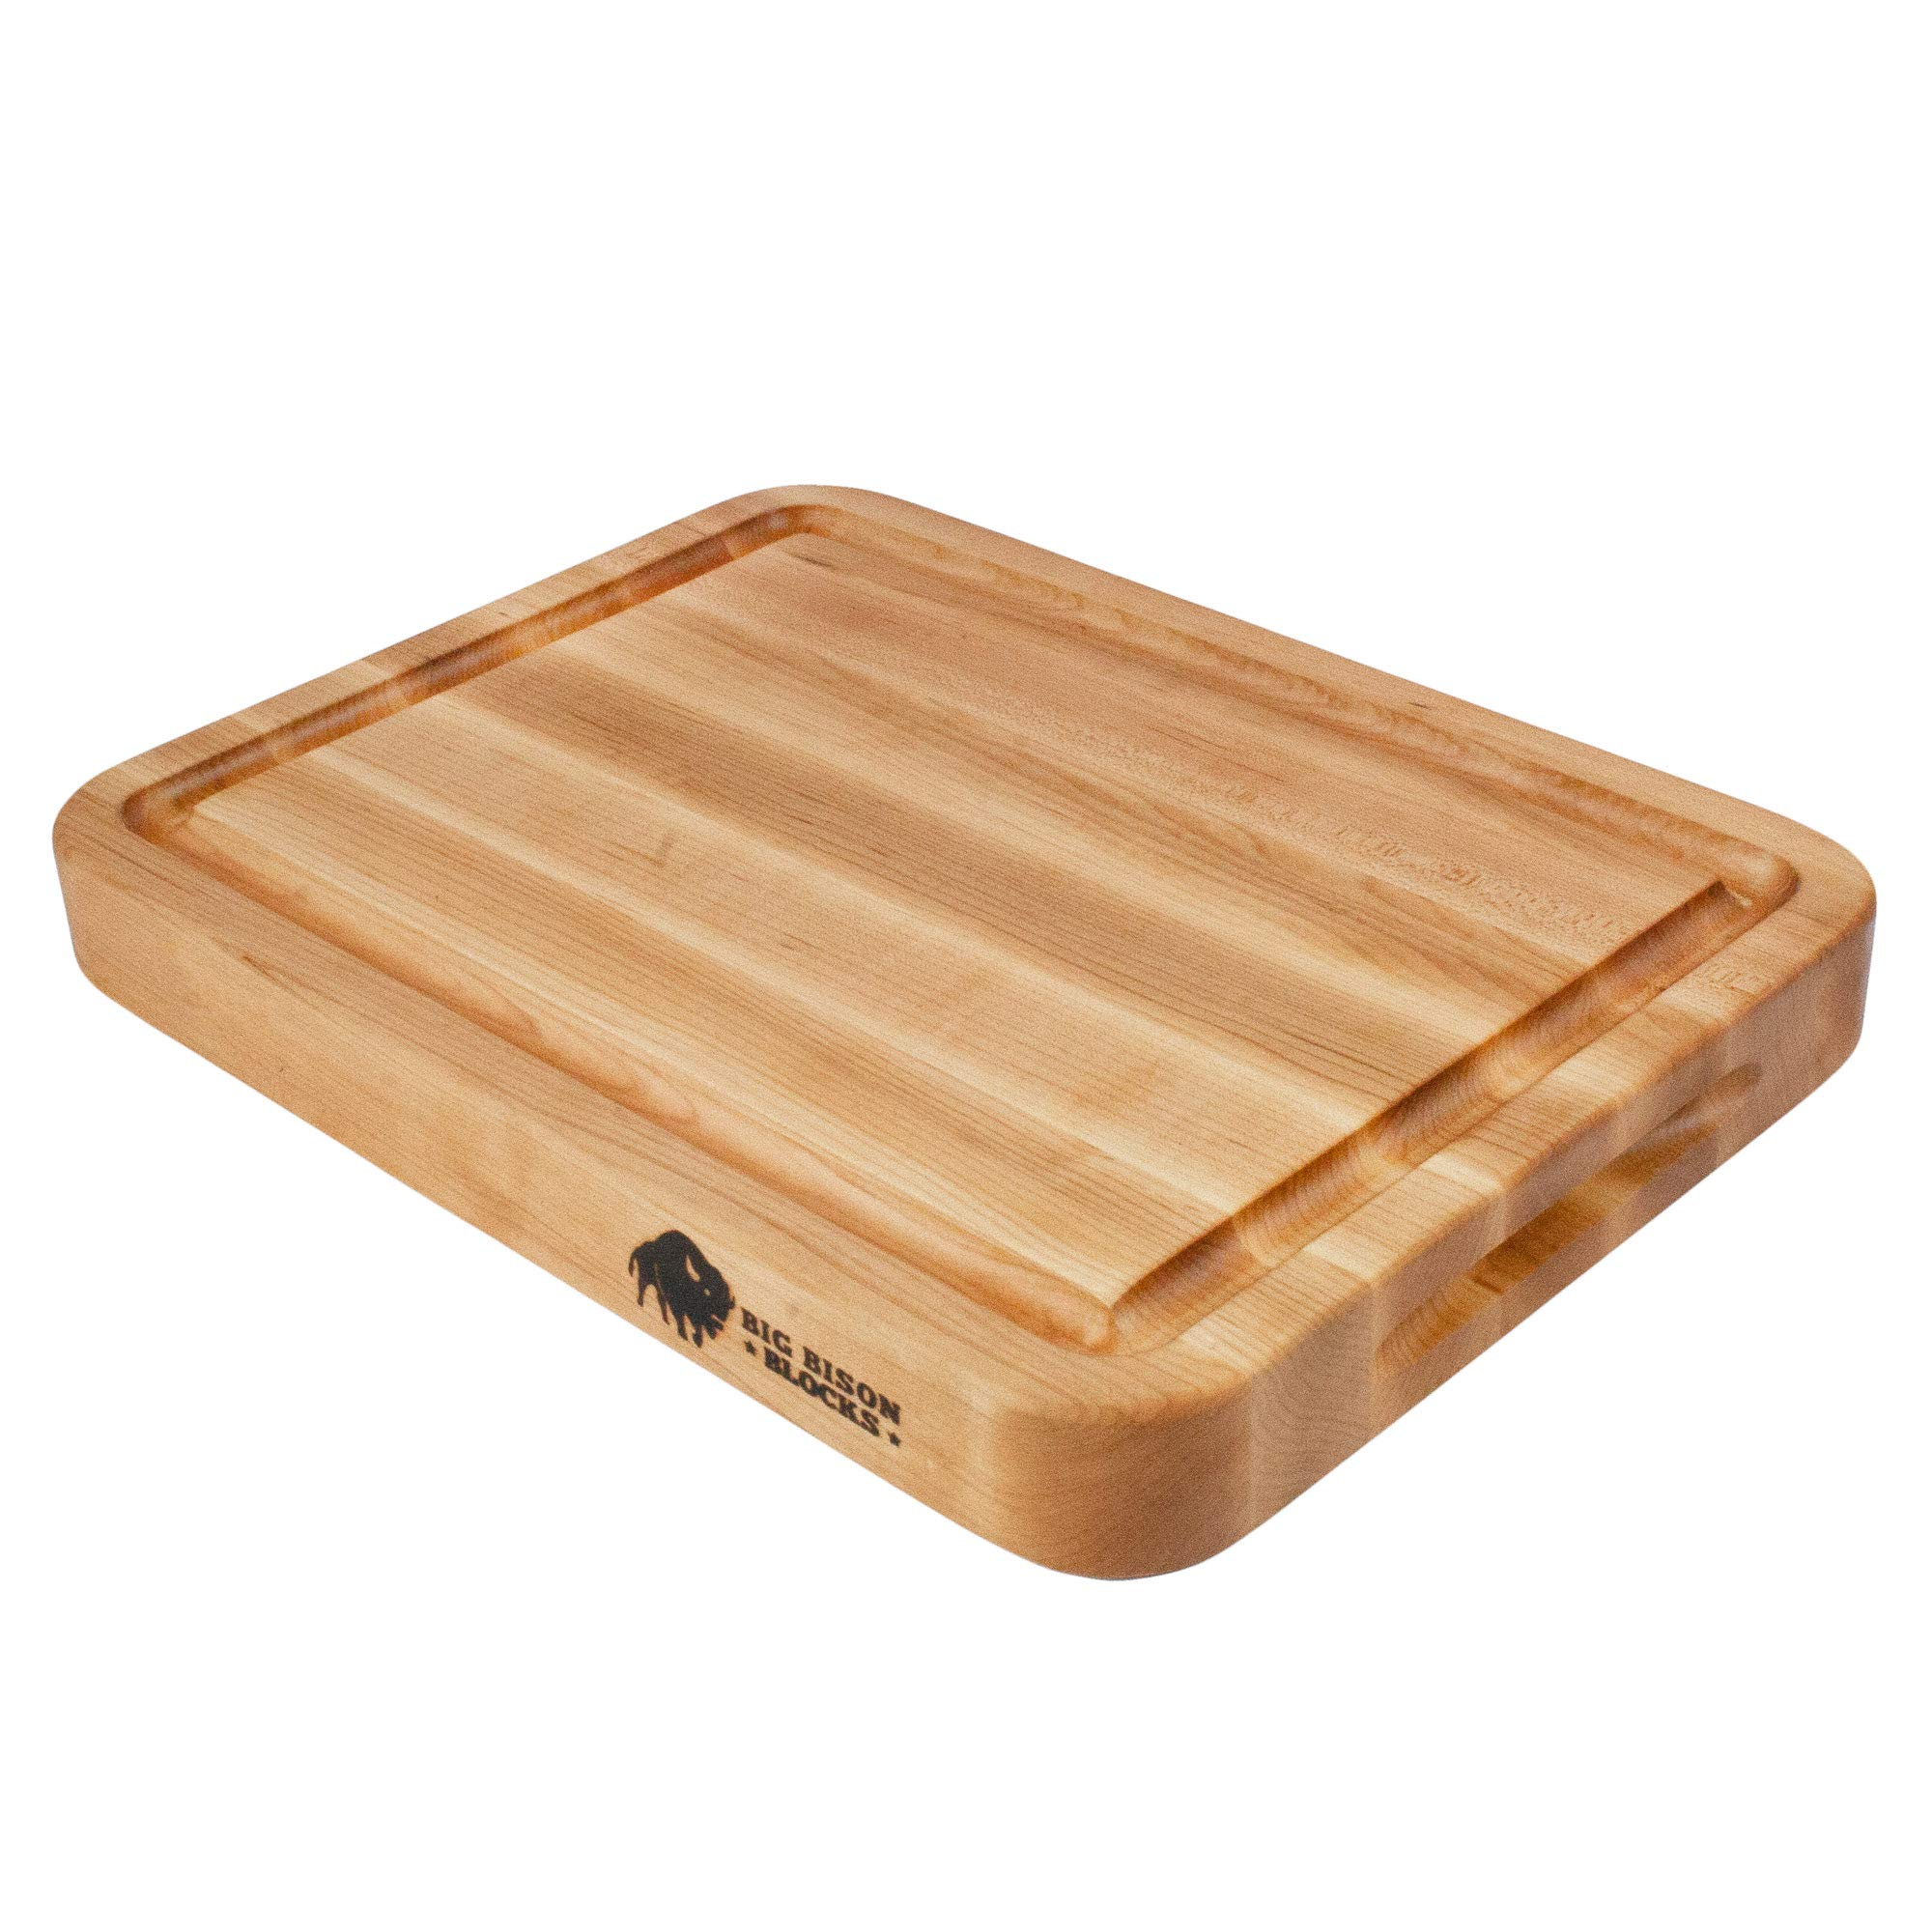 Big Bison Maple Carving Board, 16 x 12 x 1.75 Inch